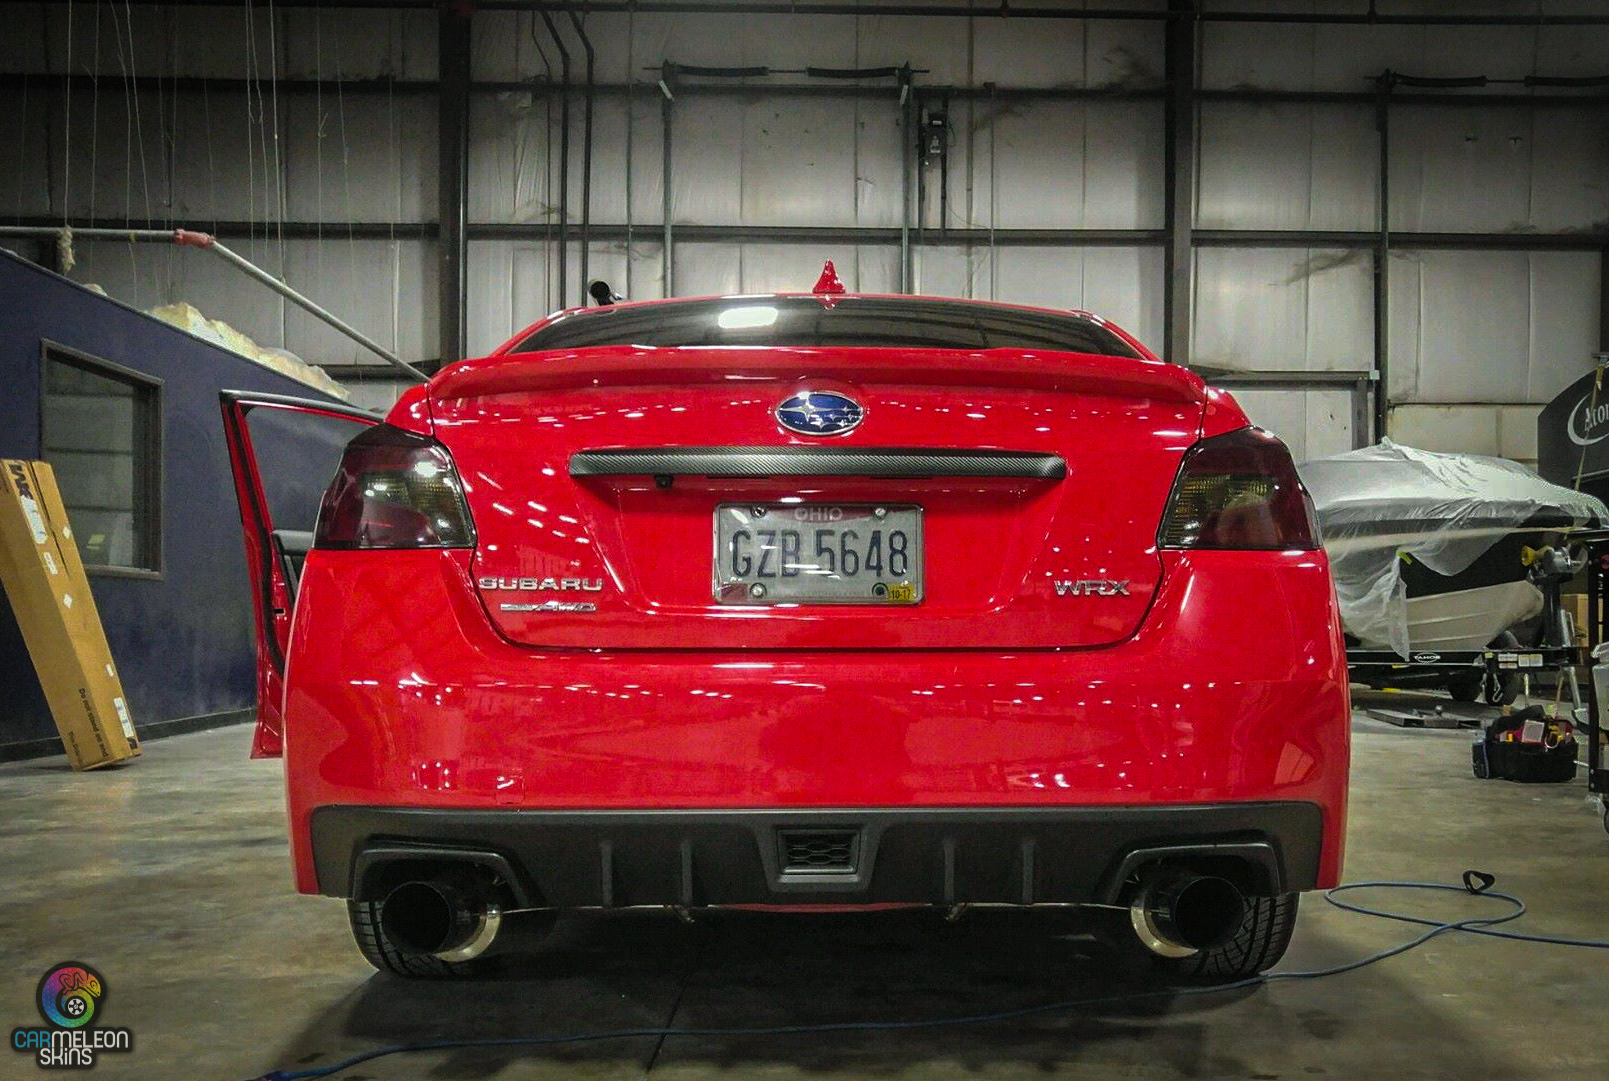 Tail light tint for this WRX